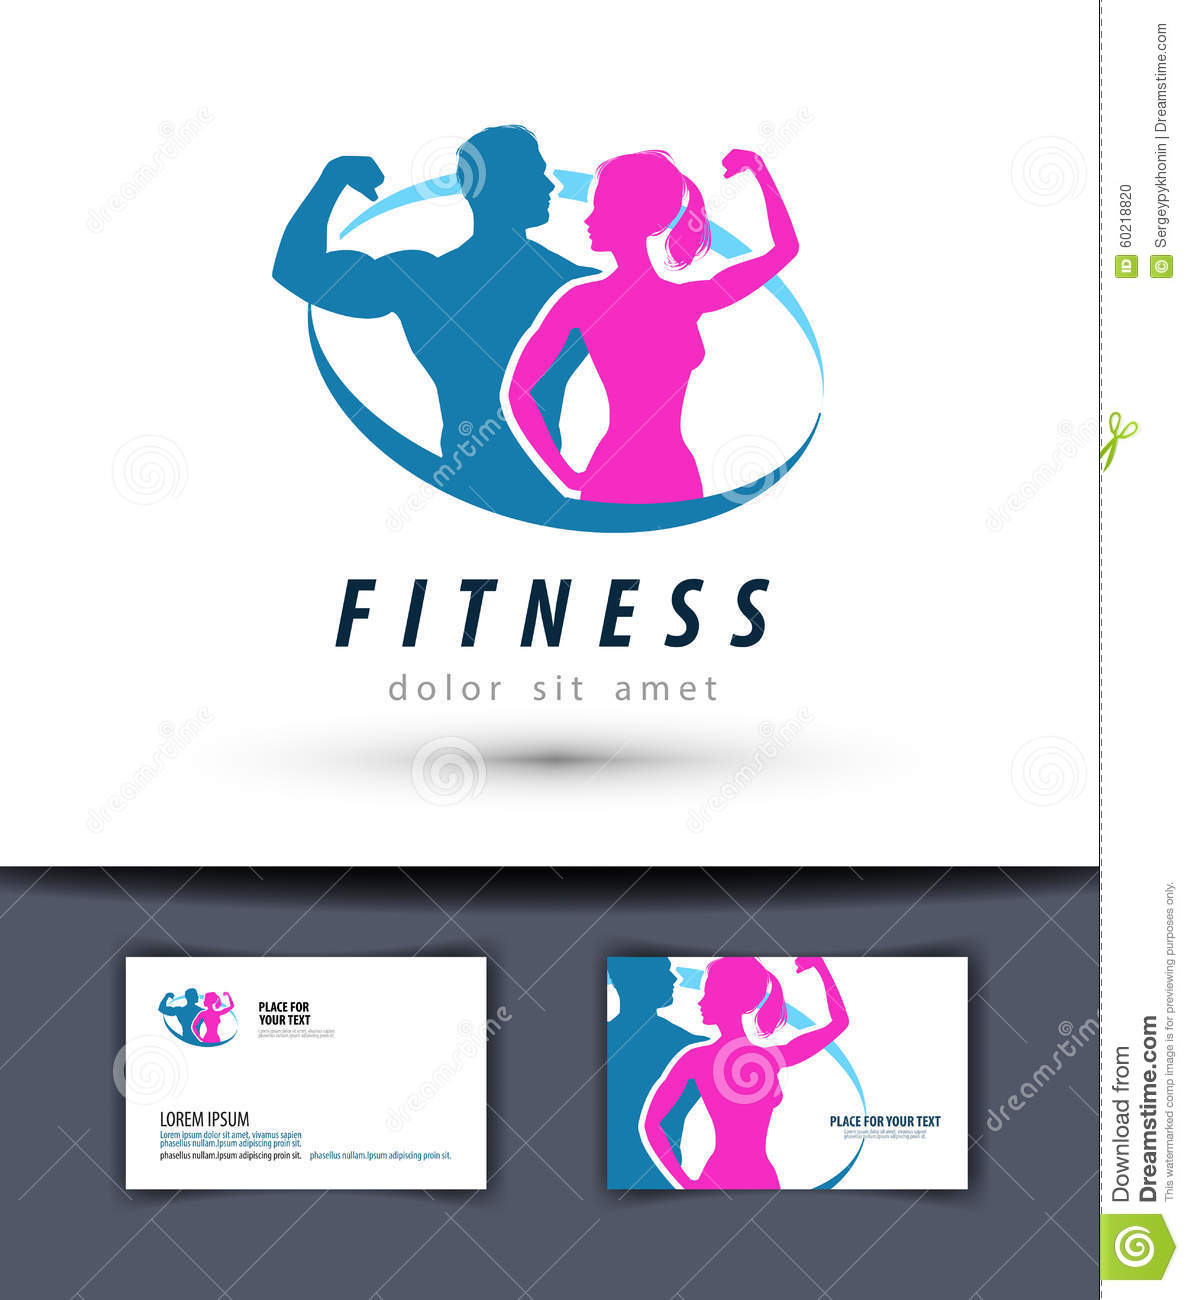 Fitness vector logo design template gym or sport stock for Gym layout design software free